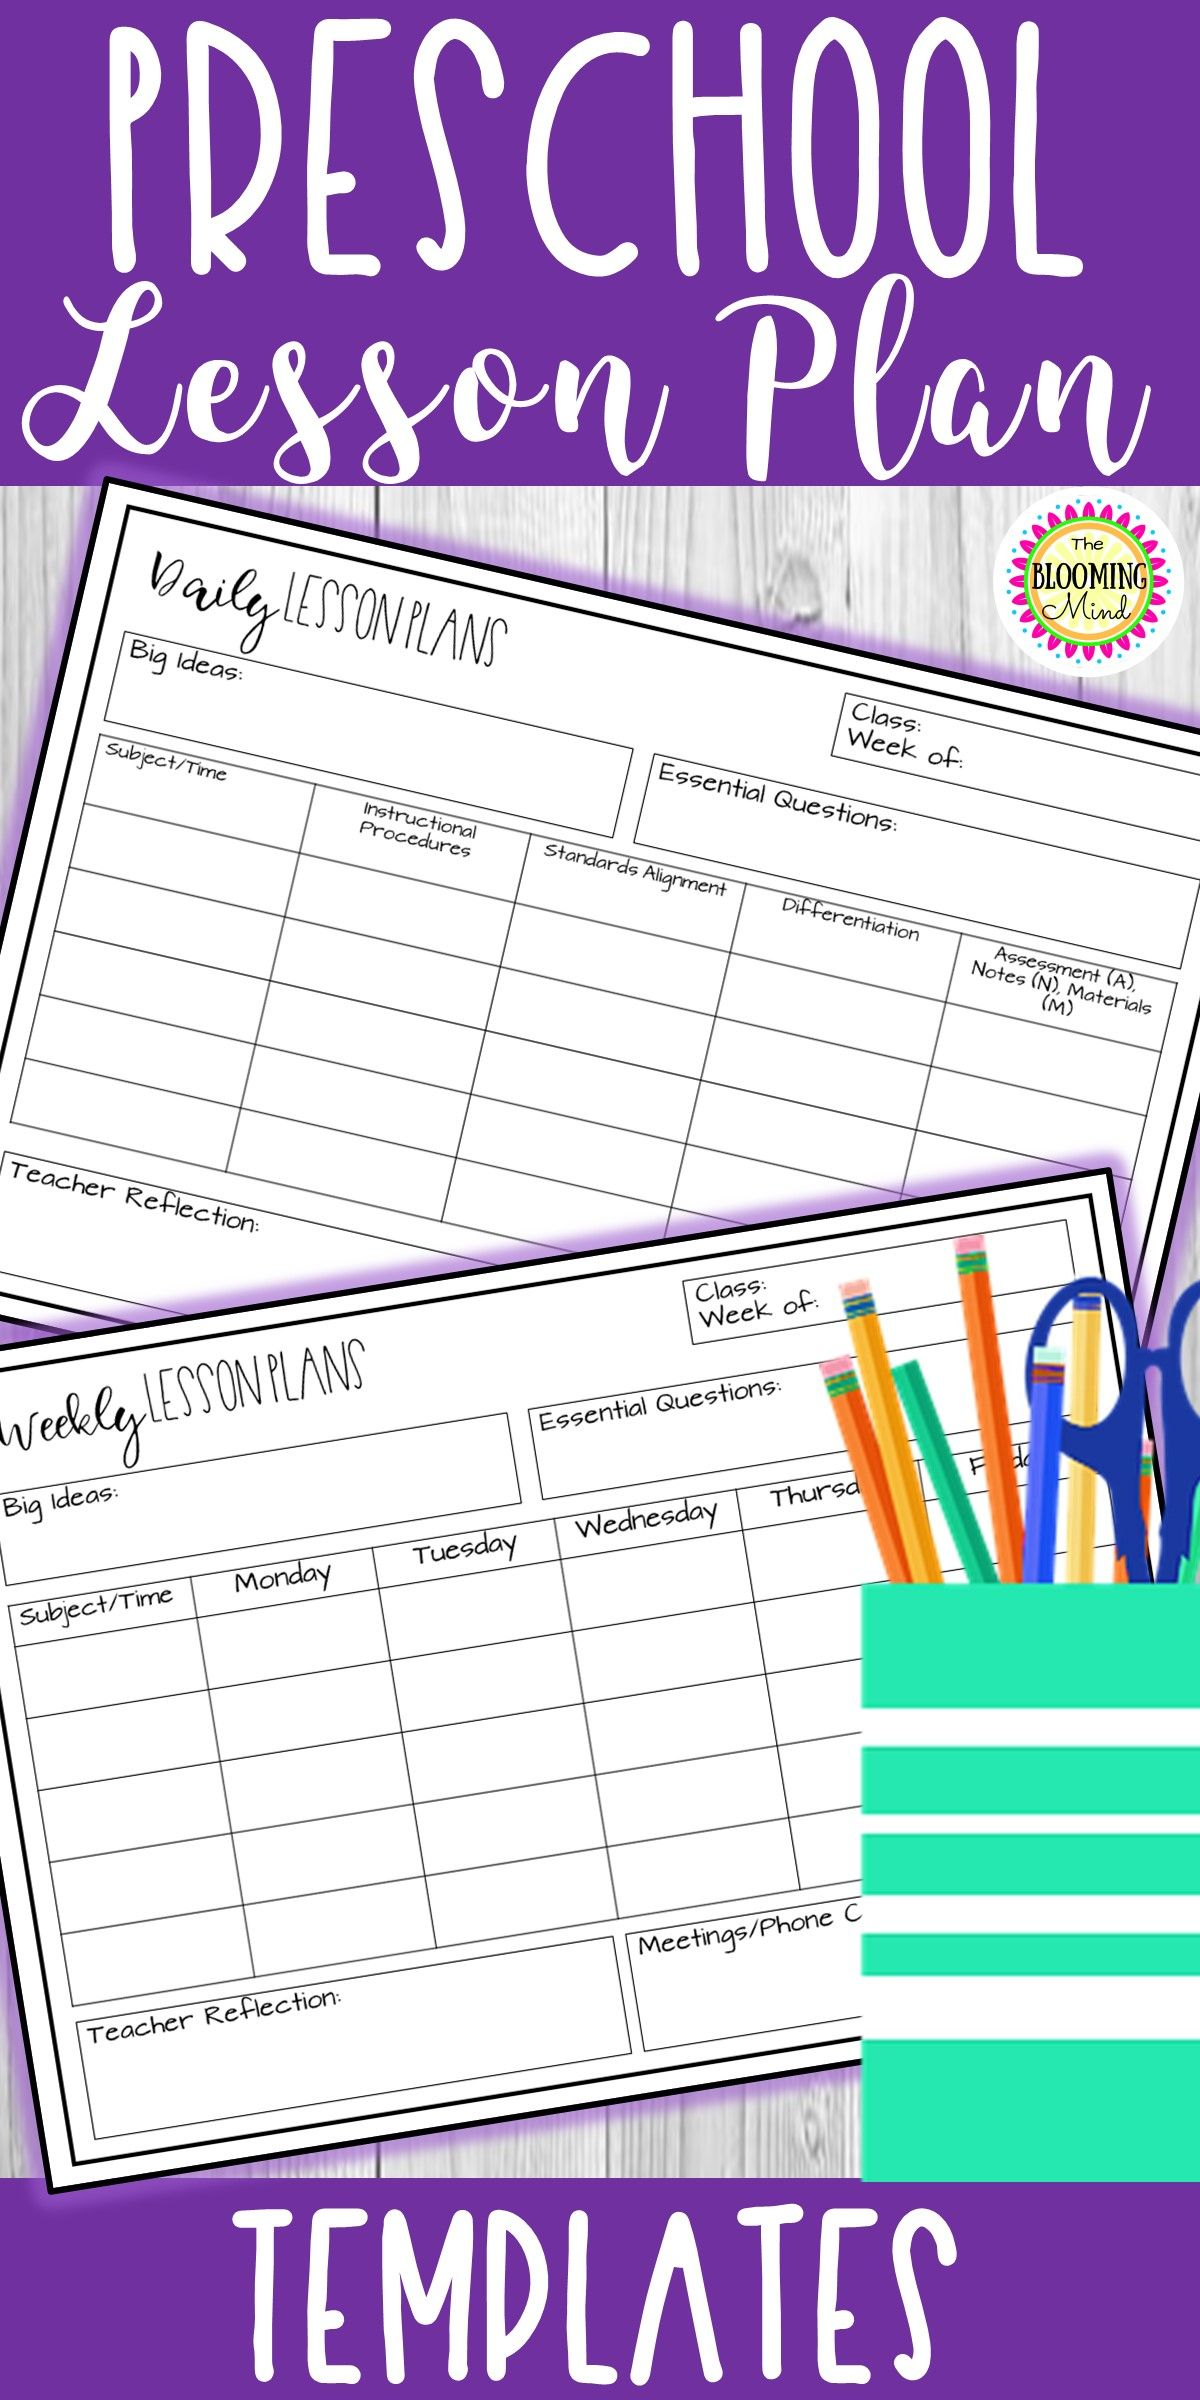 FREE editable lesson plans page templates. These WEEKLY and DAILY ...